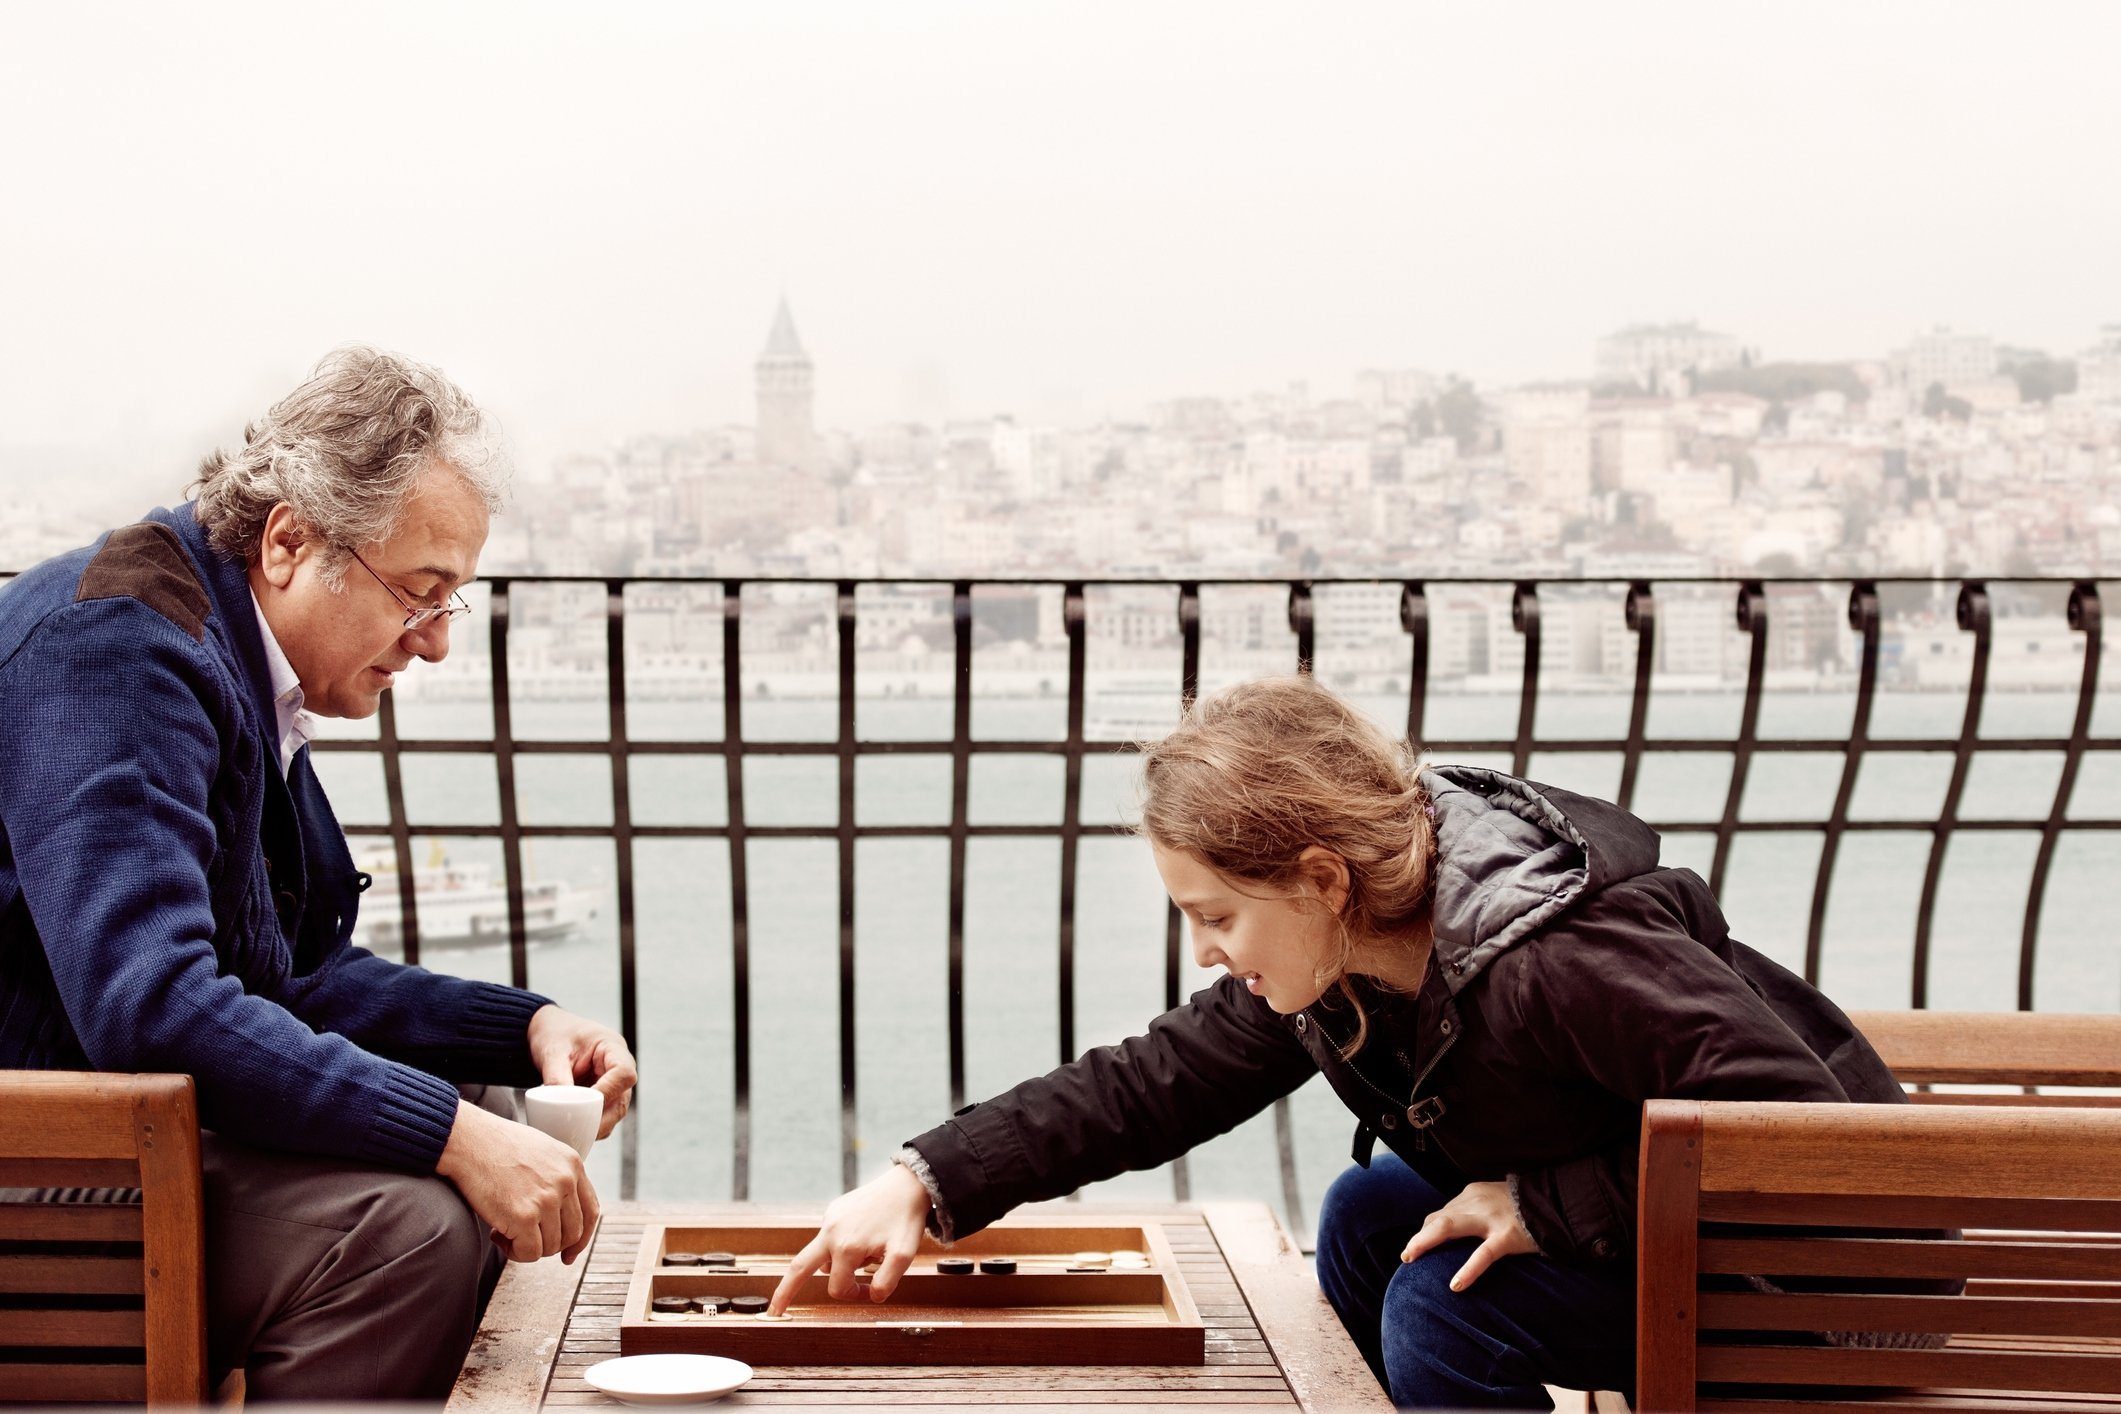 Playing backgammon is a common pastime in Turkey, and a beautifully crafted set is sure to be a great gift. (iStock Photo)